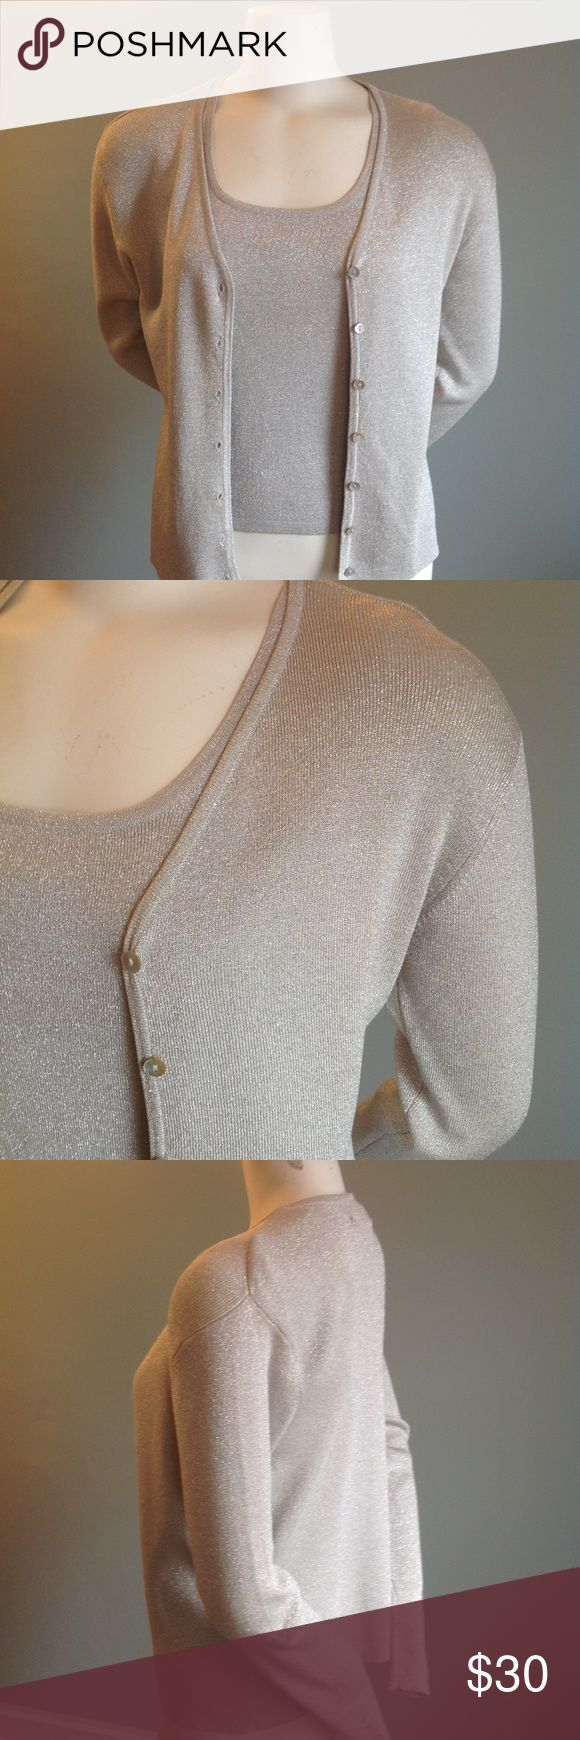 """Joseph A. Silver Cardigan Set In great condition with minimum pilling or snags, this sweater set is 70% silk/ 15% spandex/ 15% metallic thread. Hand wash cold. Length 20."""" Sleeve length 23."""" Bust 35"""" with ample stretch. Beautiful and hangs nicely. Joseph A. Sweaters Cardigans"""